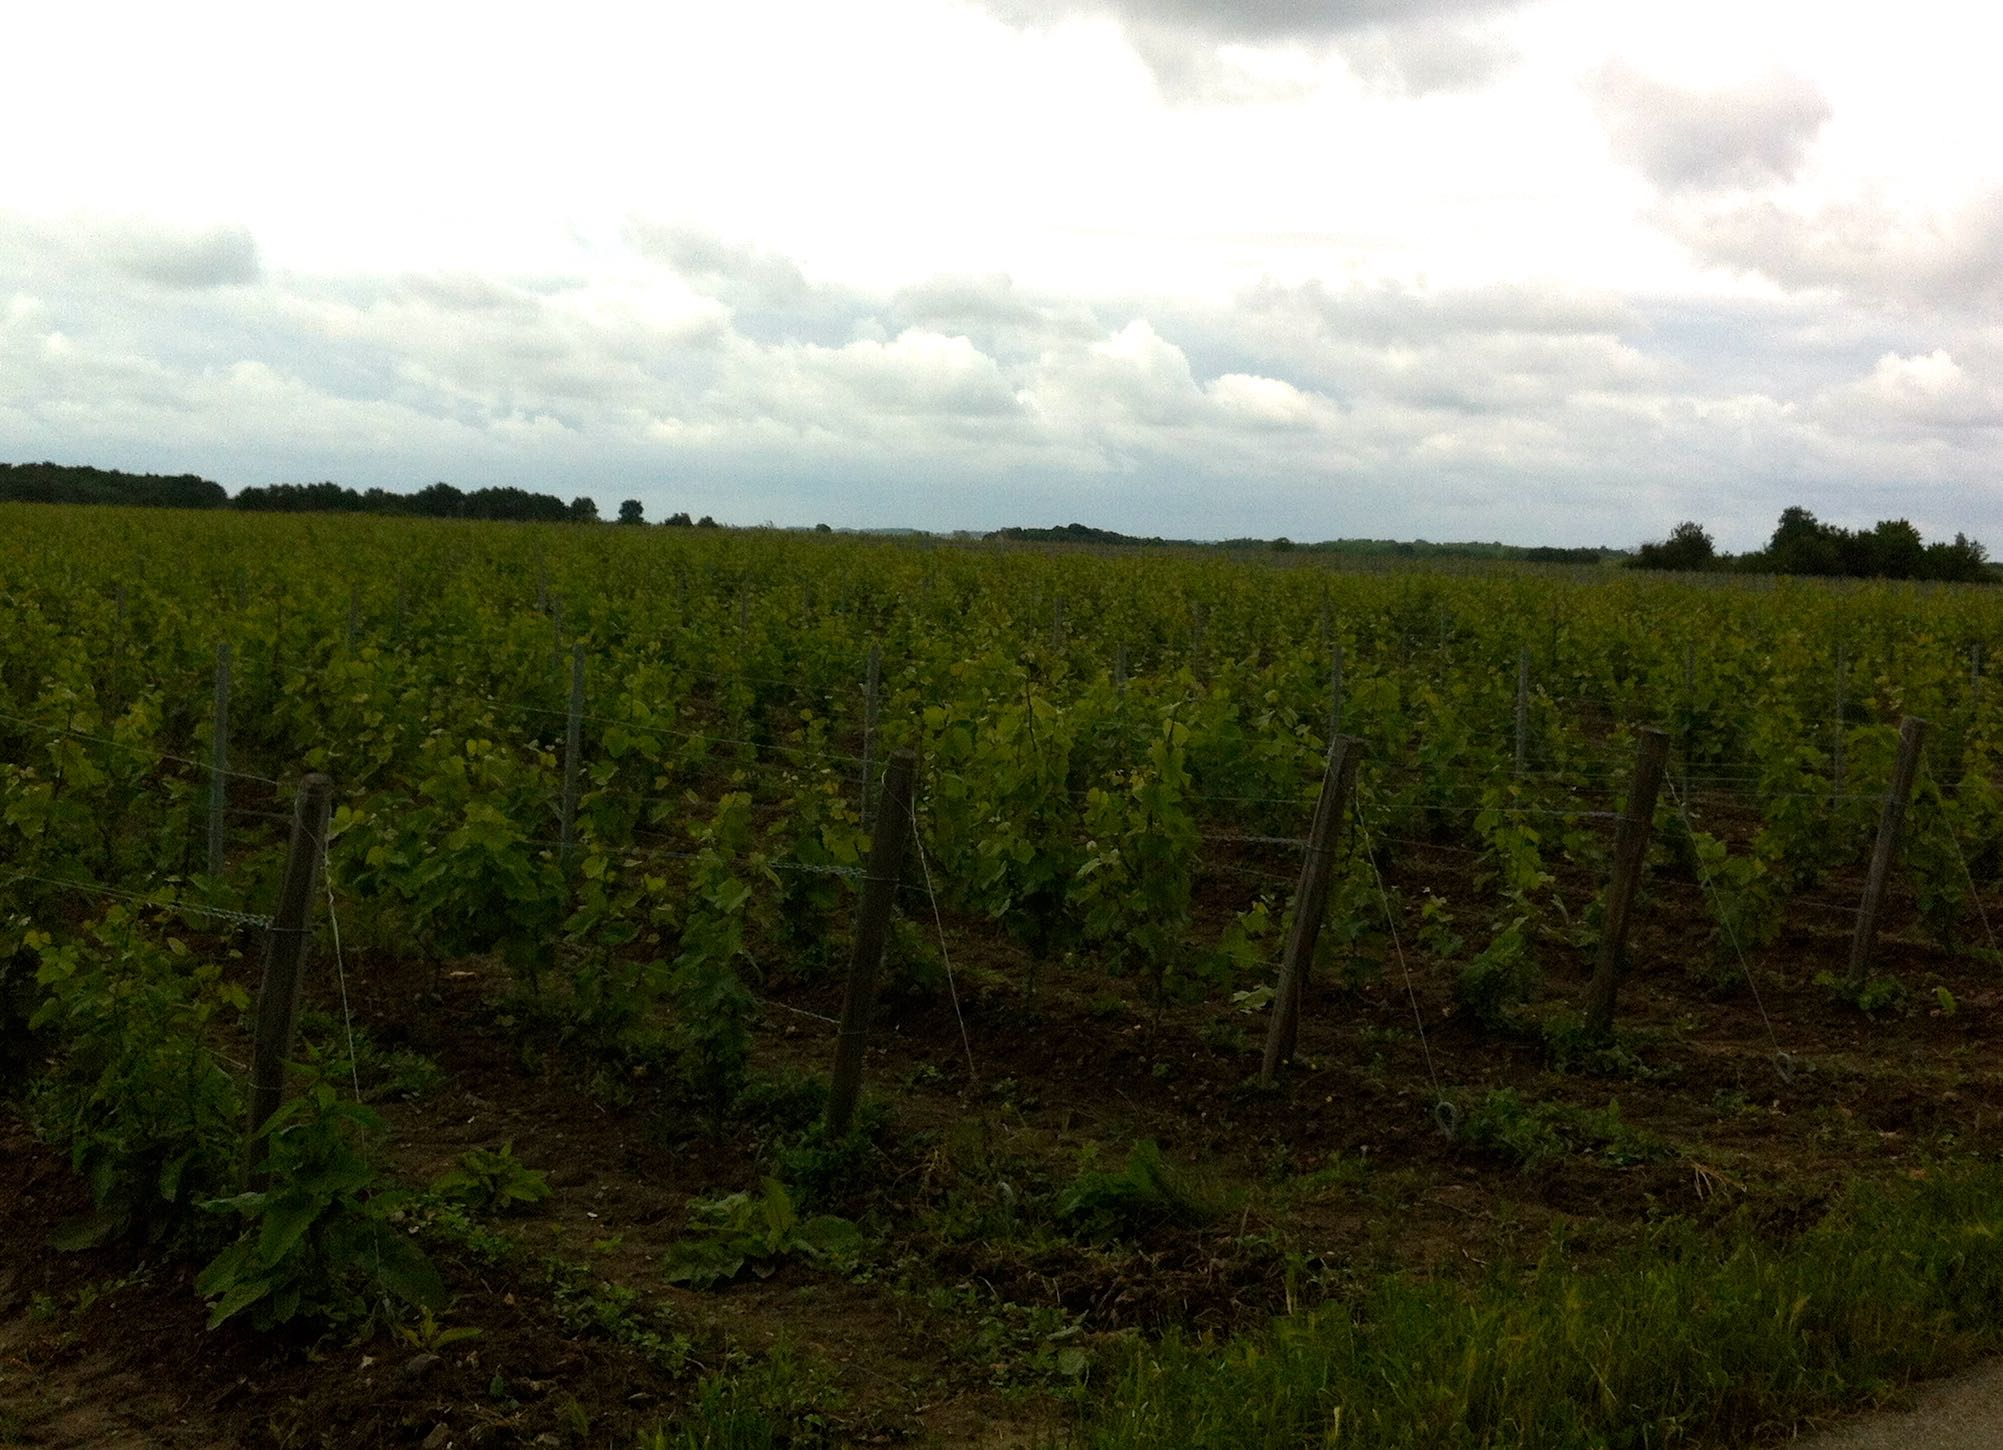 we cycled past vineyards too today which kind of made us thirsty